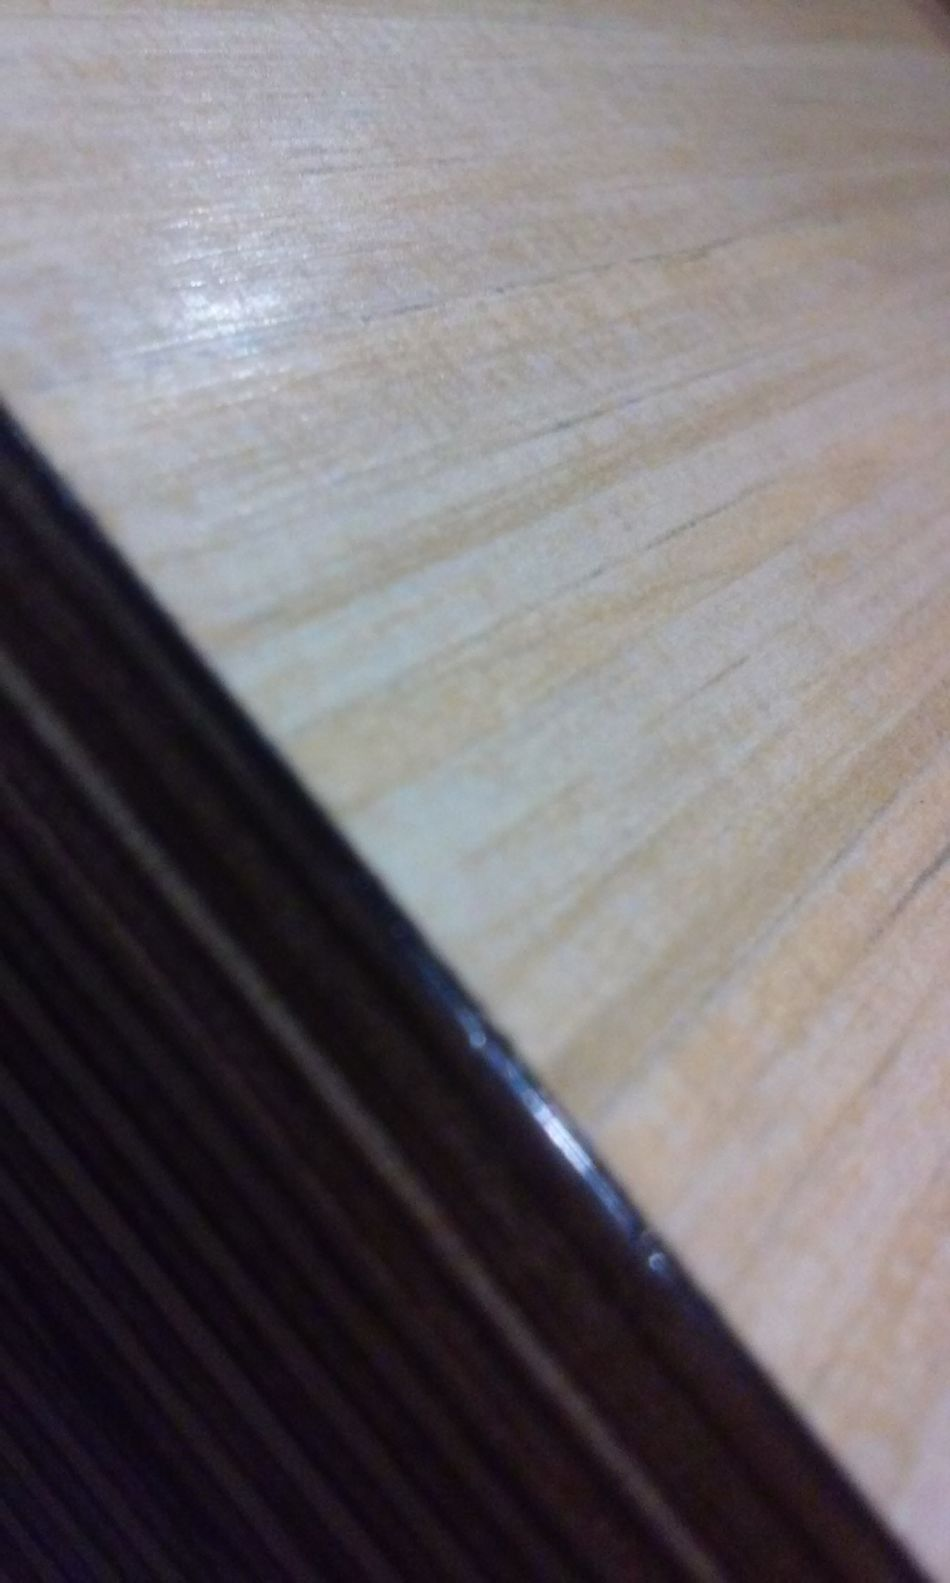 Woodgrain Experiments In Focus Table The Edge Of